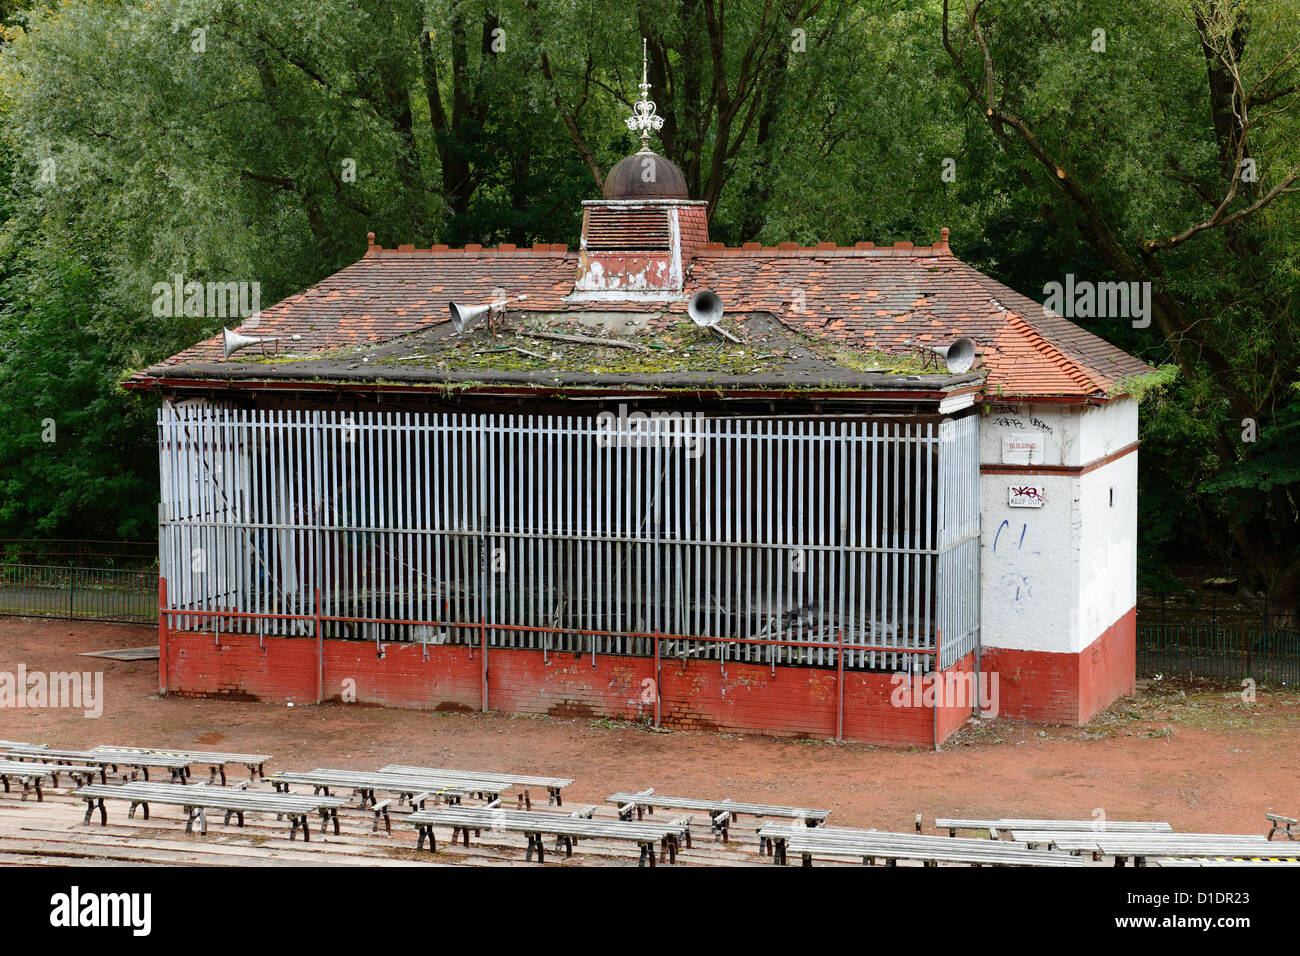 The derelict bandstand in Kelvingrove Park before renovation in the West End of Glasgow, Scotland, UK - Stock Image